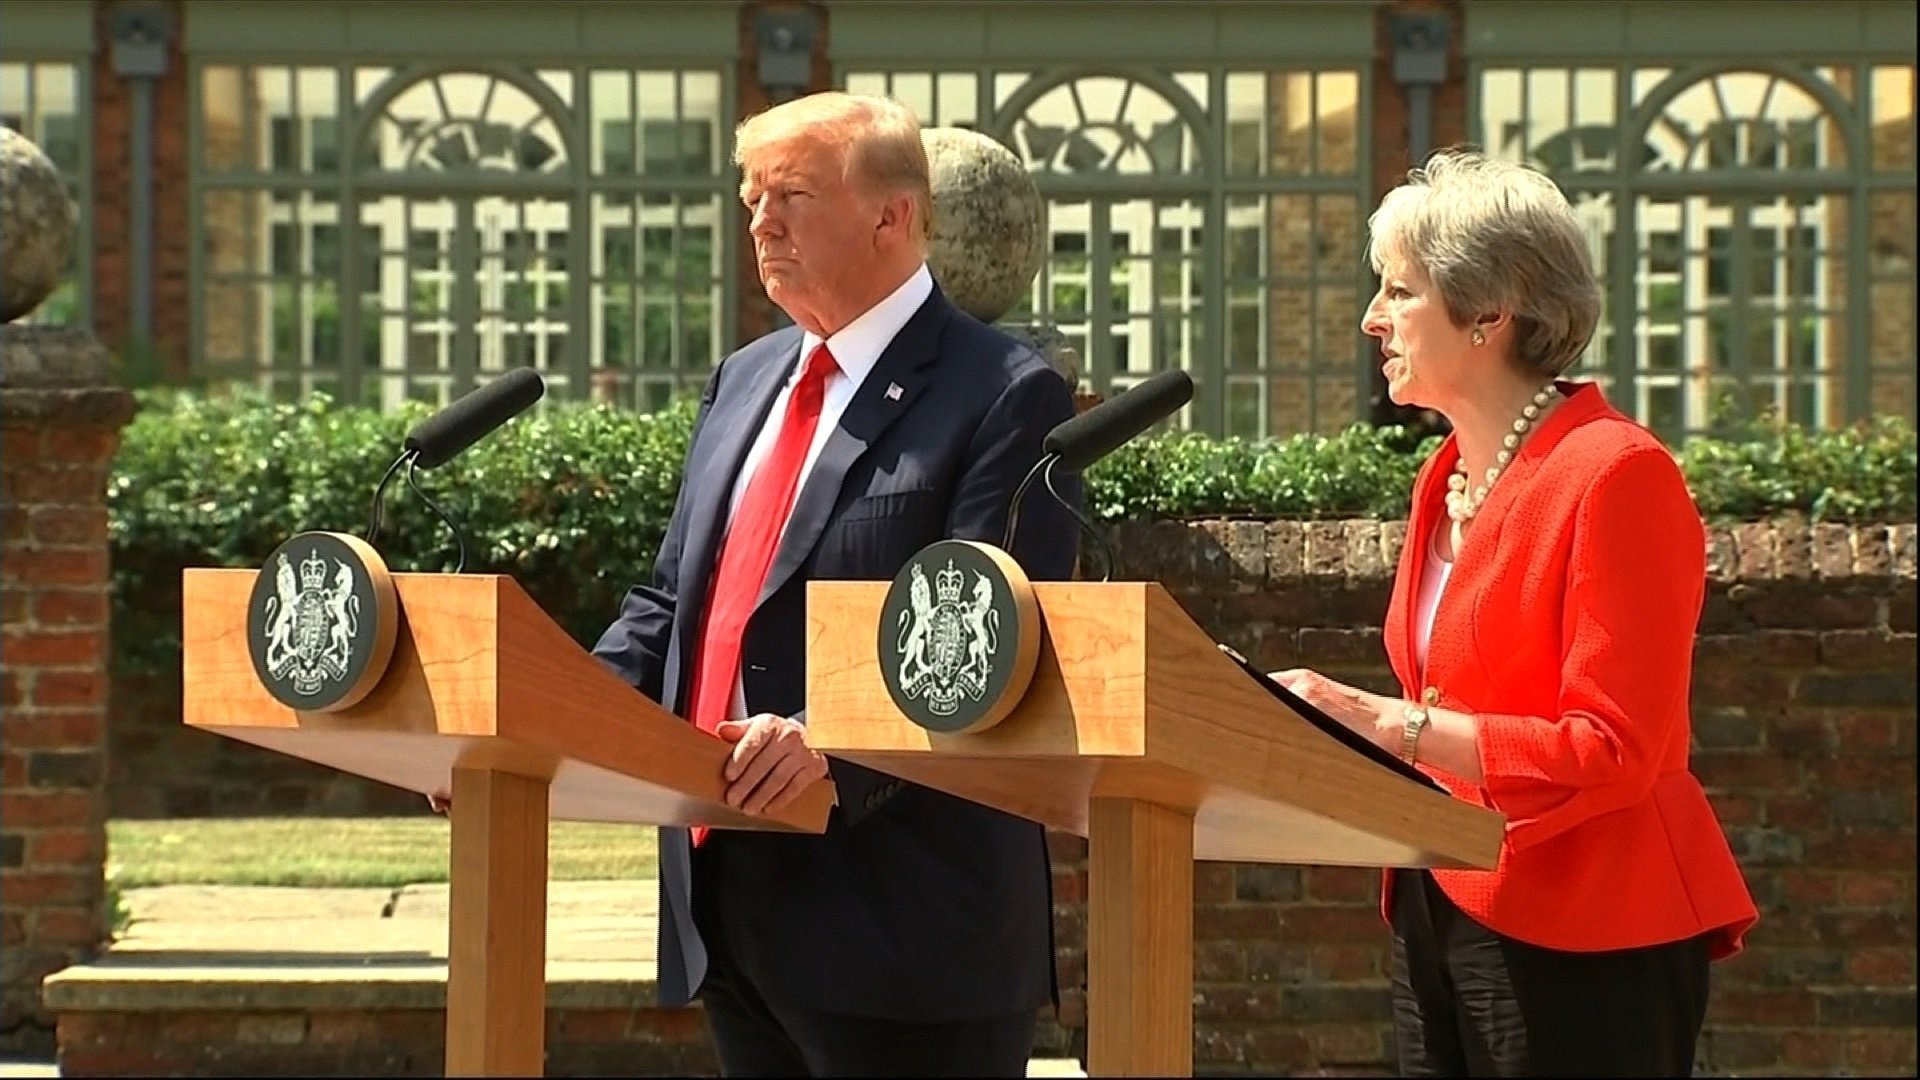 Donald Trump told me to sue the European Union, says Theresa May